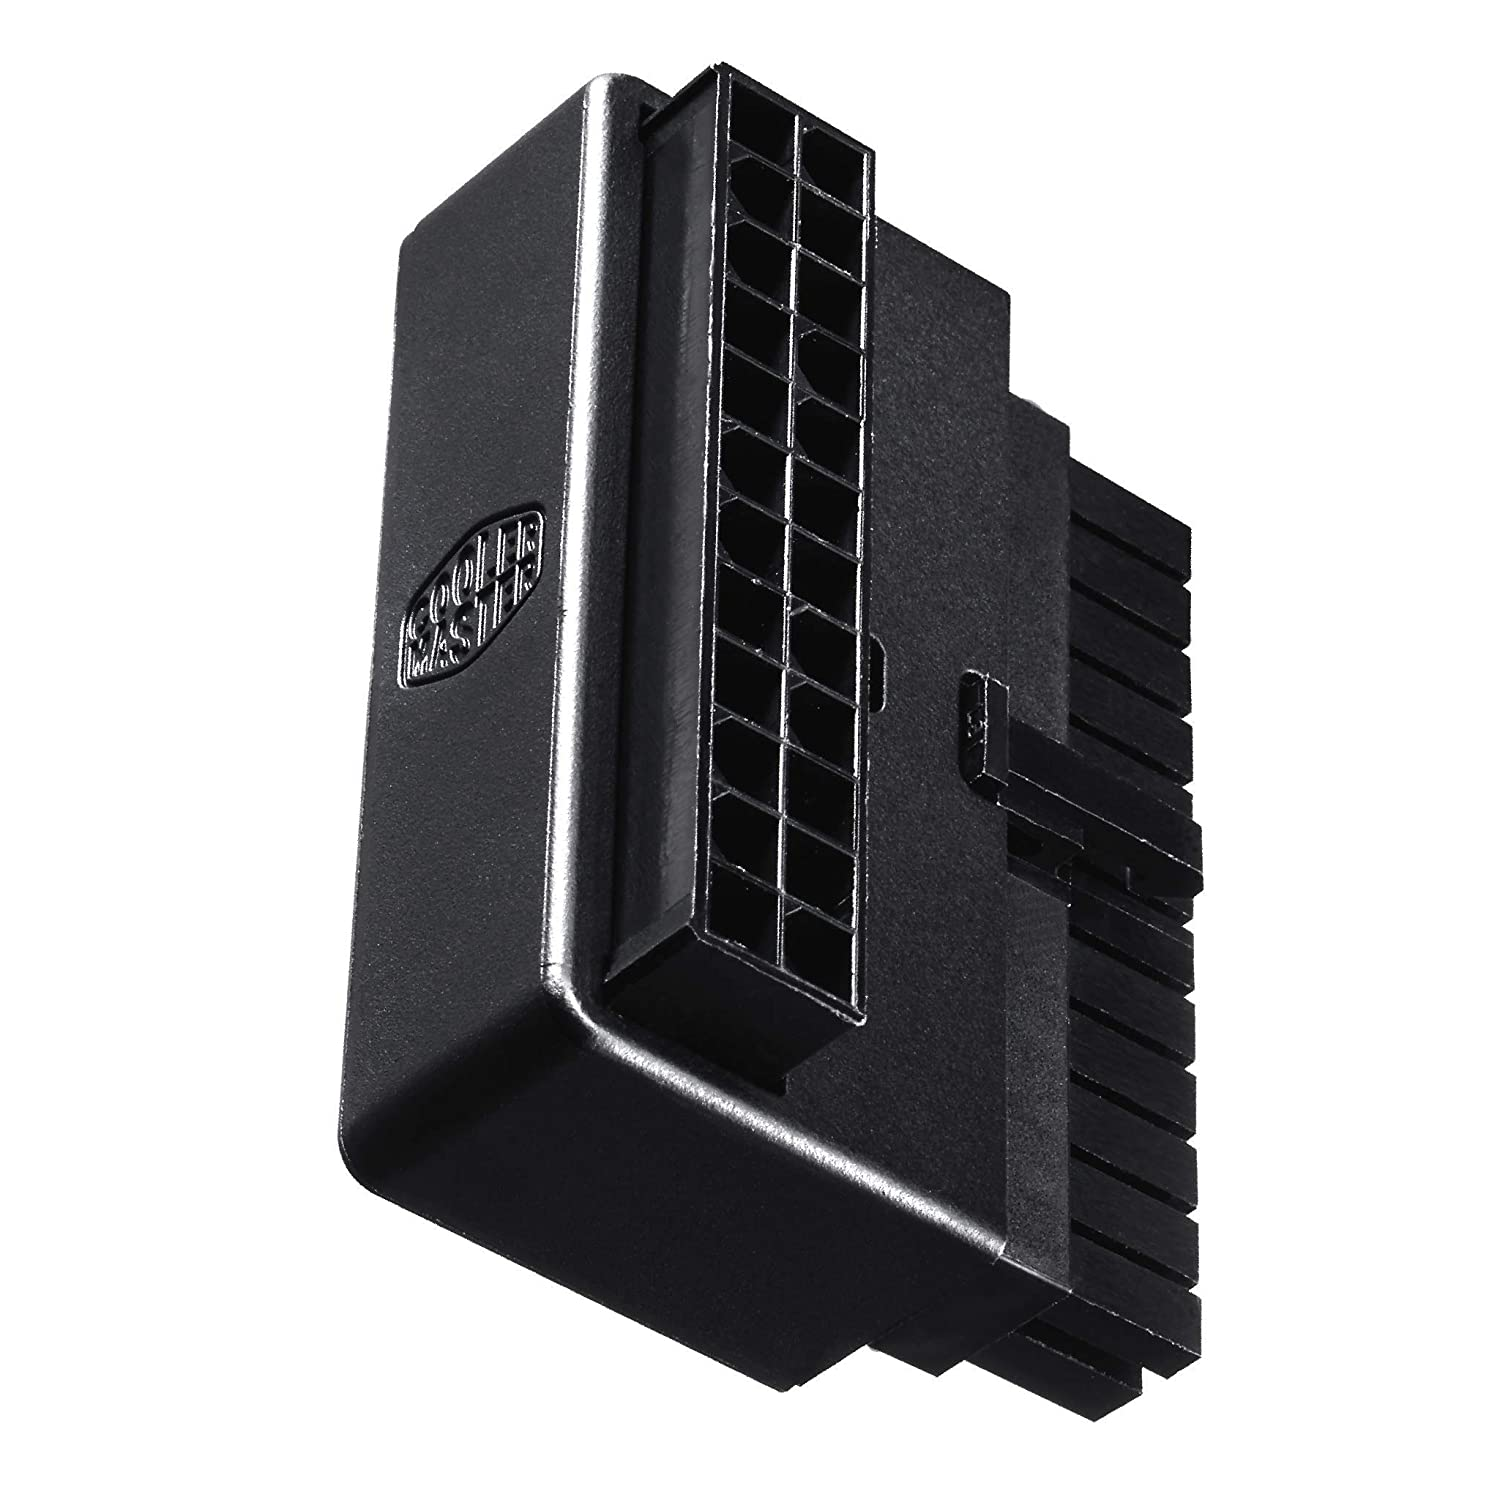 Cooler Master 24 Pin 90 Degree Adapter (with Build-in Capacitor) Cooler Master USA Inc. CMA-CEMB01XXBK1-GL